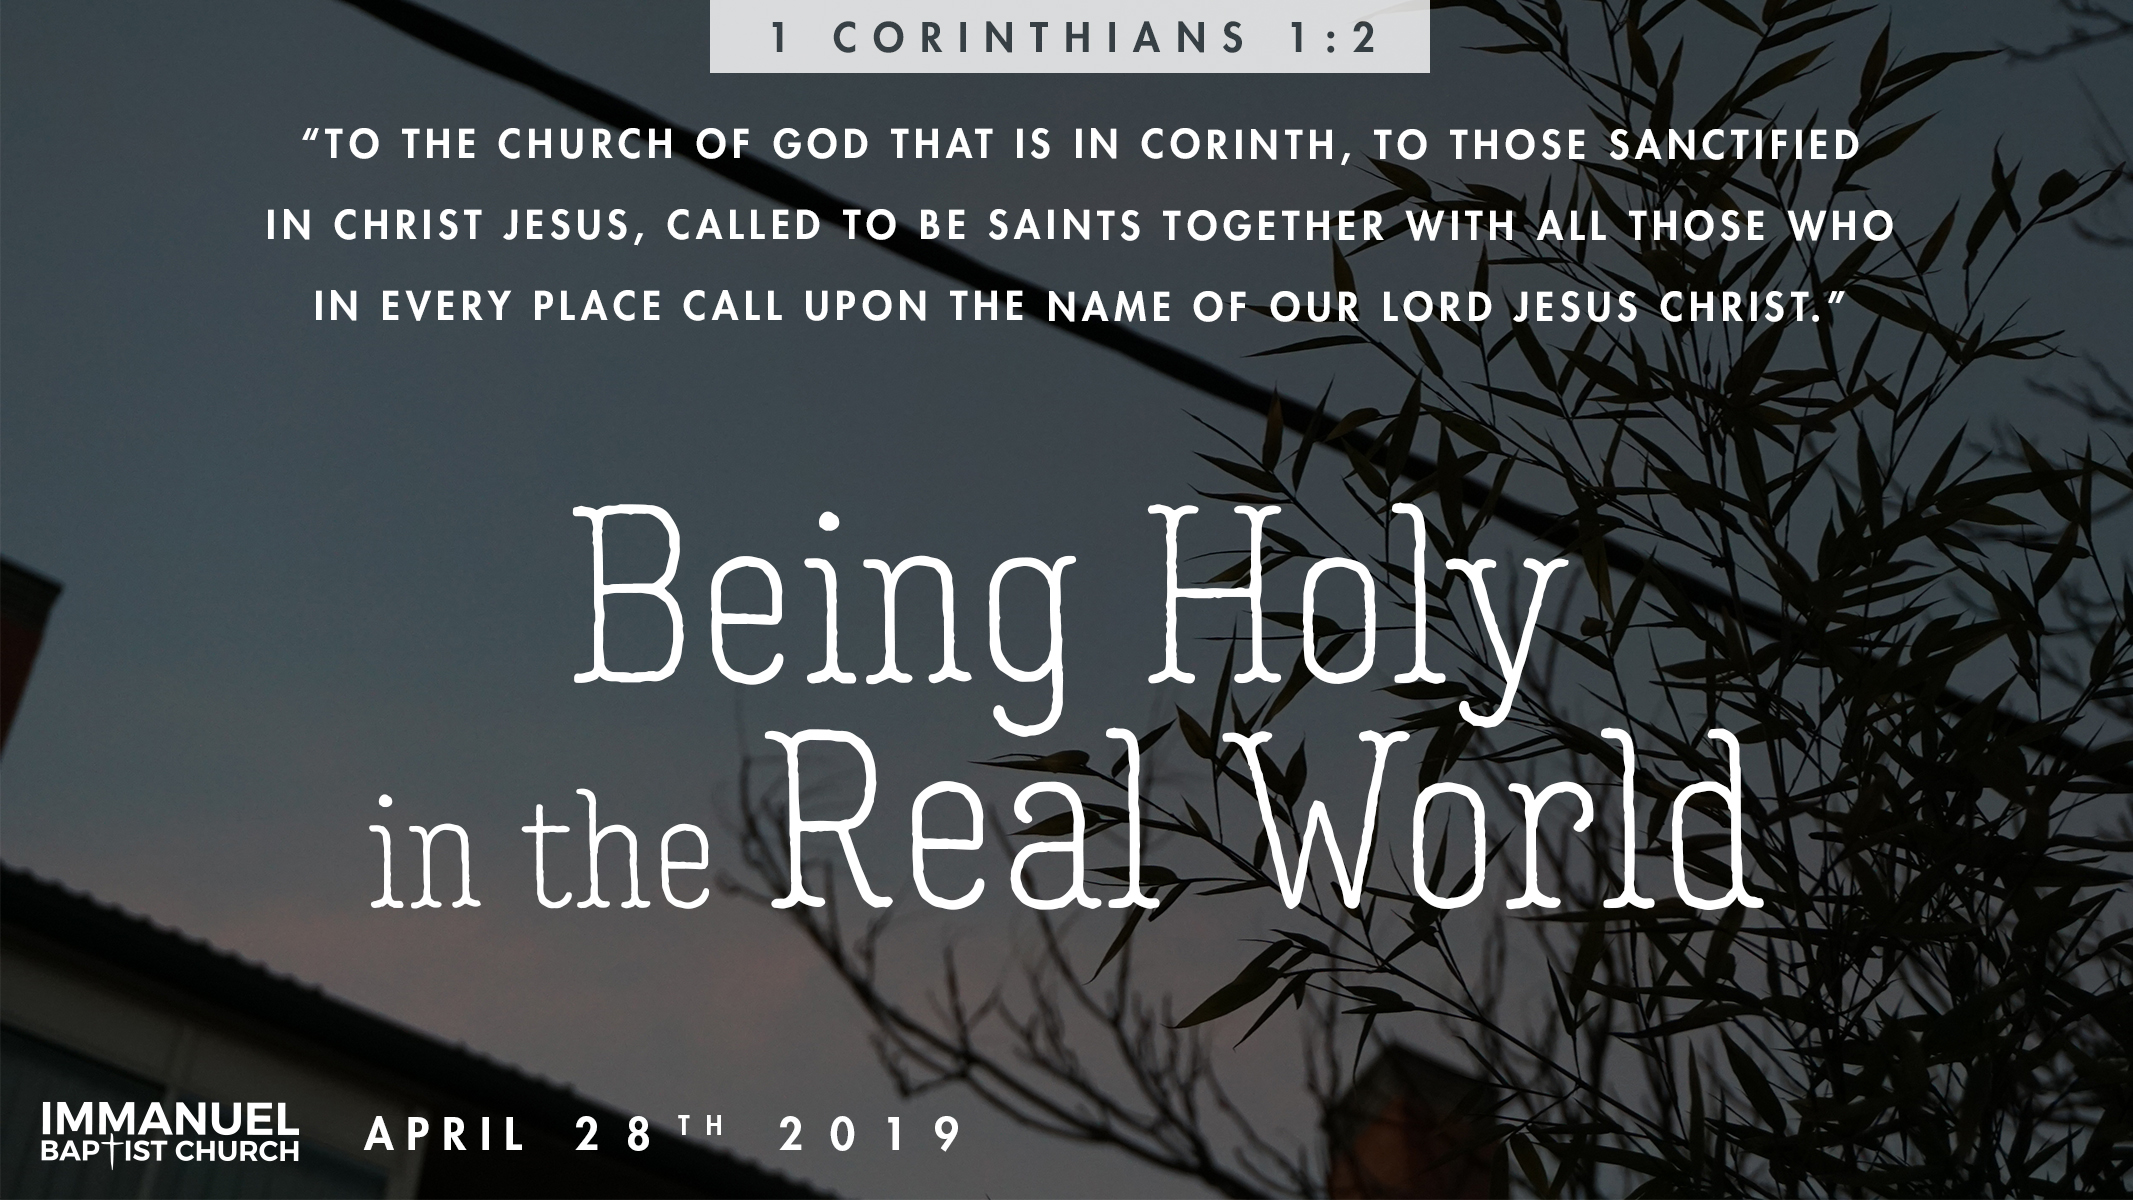 Being Holy in the Real World Image